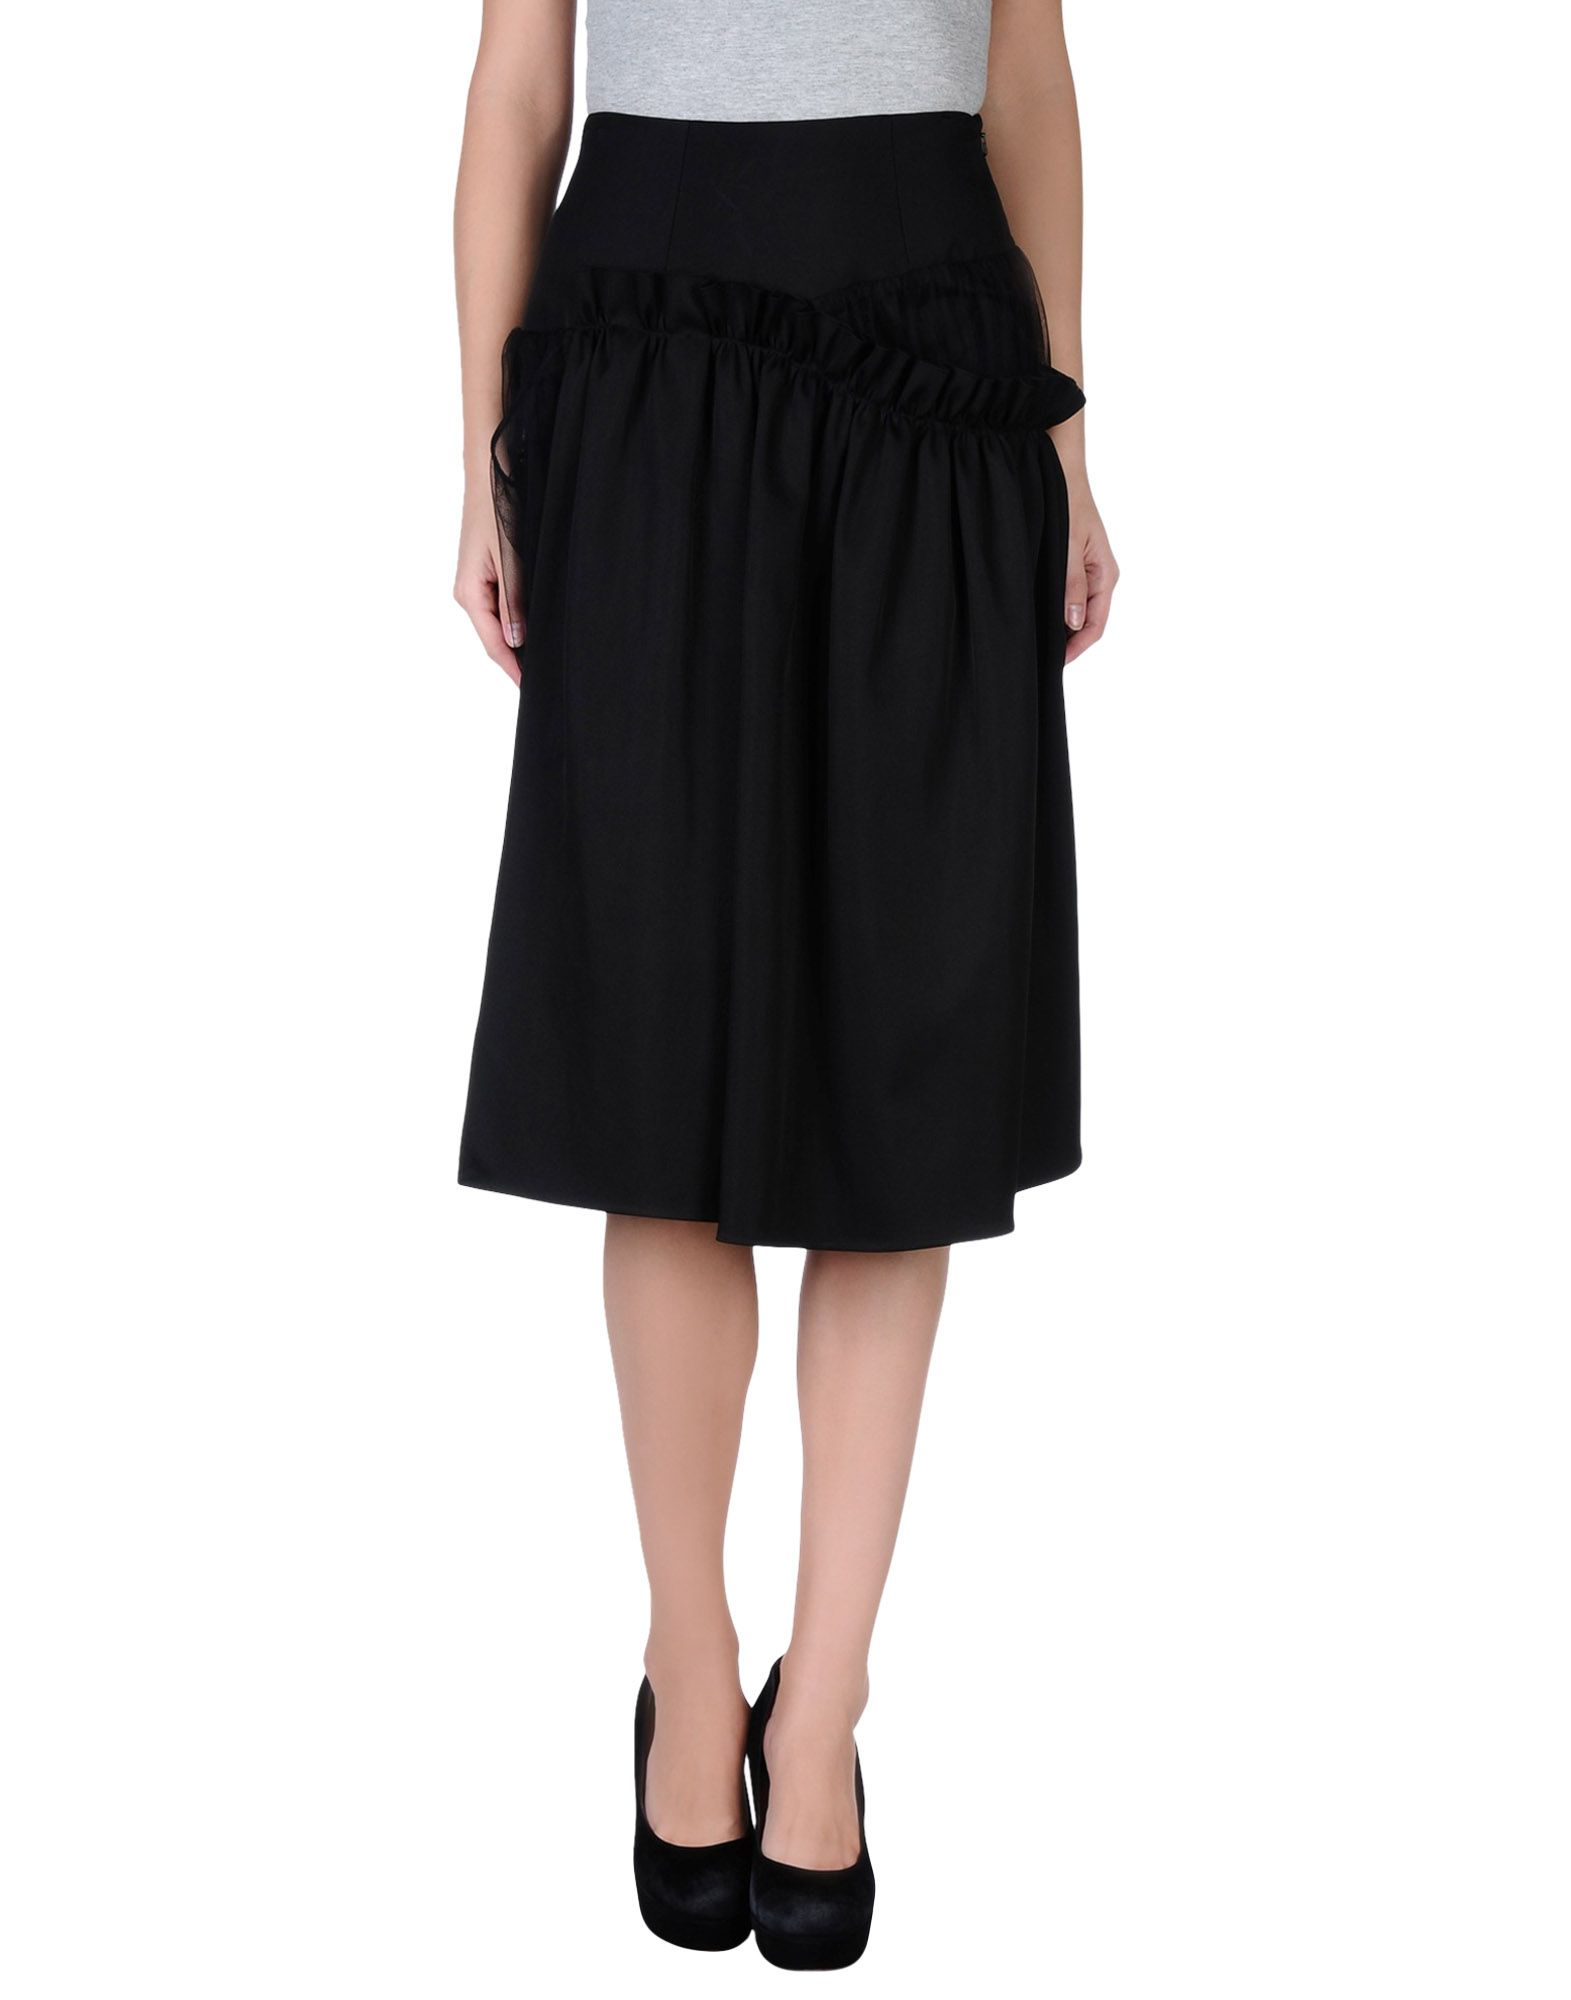 This new black kosher fitness skirt style is the Athletic Skirt in a long silhouette. This mid-calf length a-line skirt with comfortable flat waistband sits above the hip, offering modesty and extra coverage in a super-slimming and flattering style.